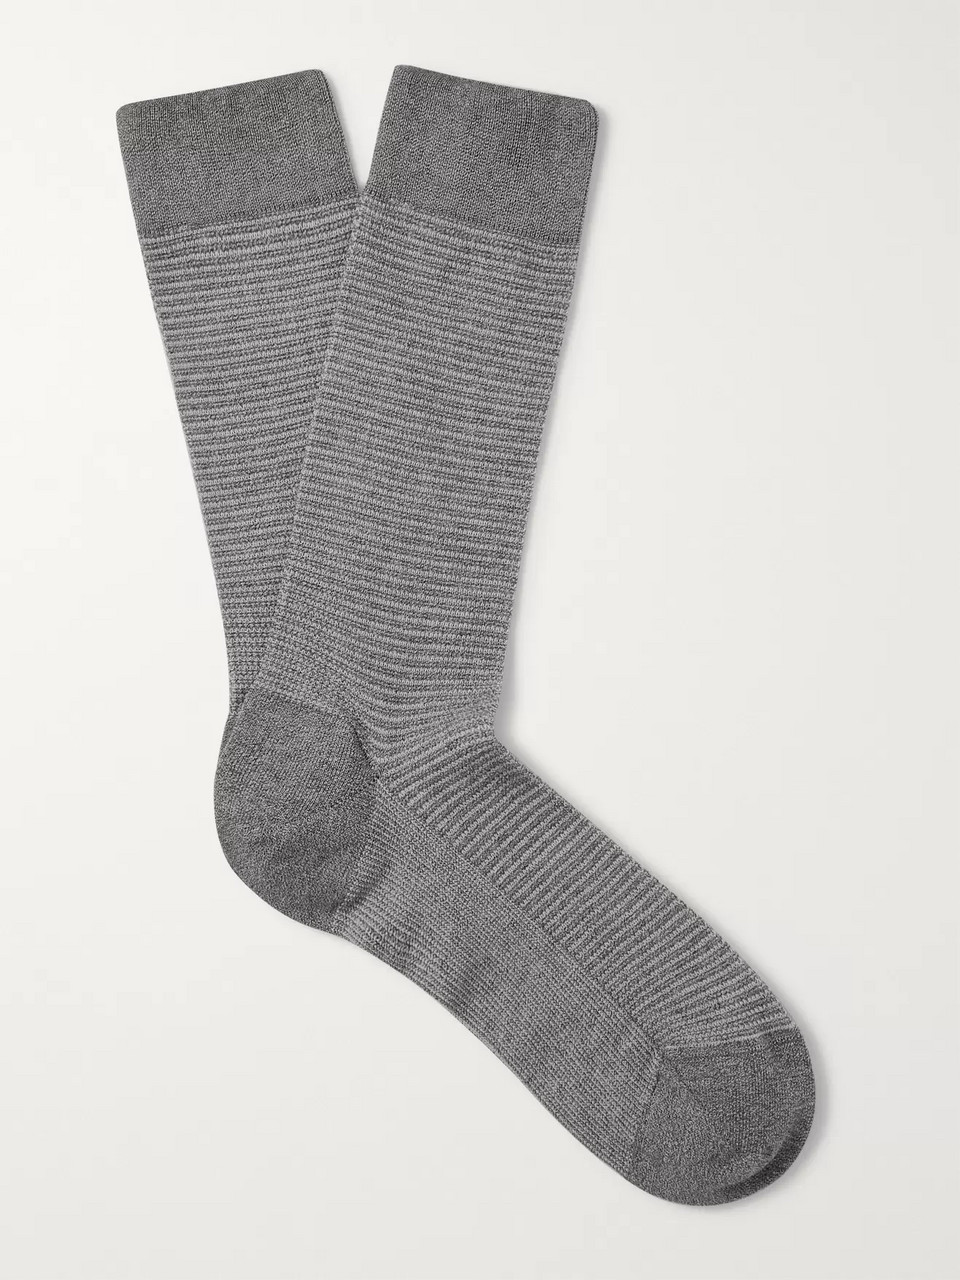 Ermenegildo Zegna Textured Mélange Stretch Cotton-Blend Socks